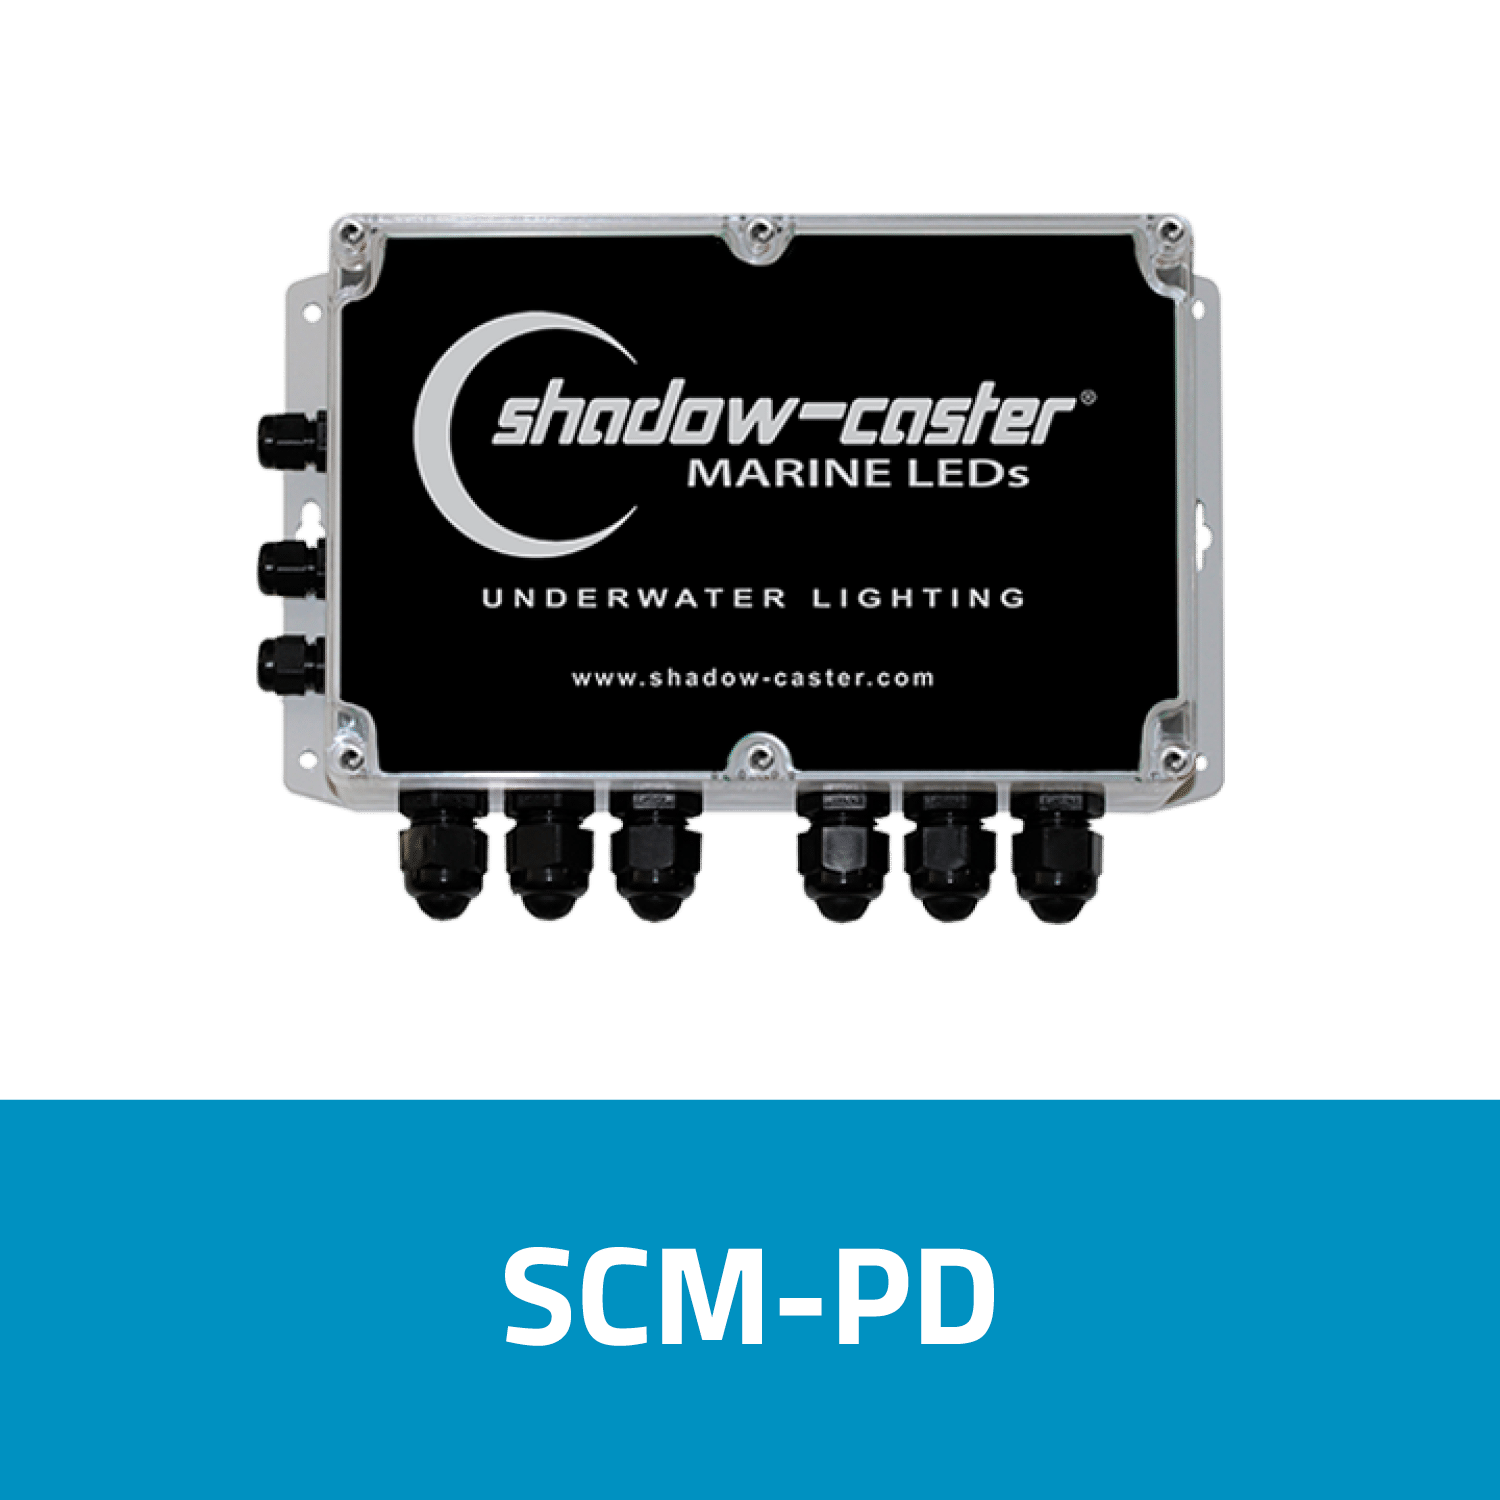 Shadow-Caster Marine LED Lighting SCM-PD